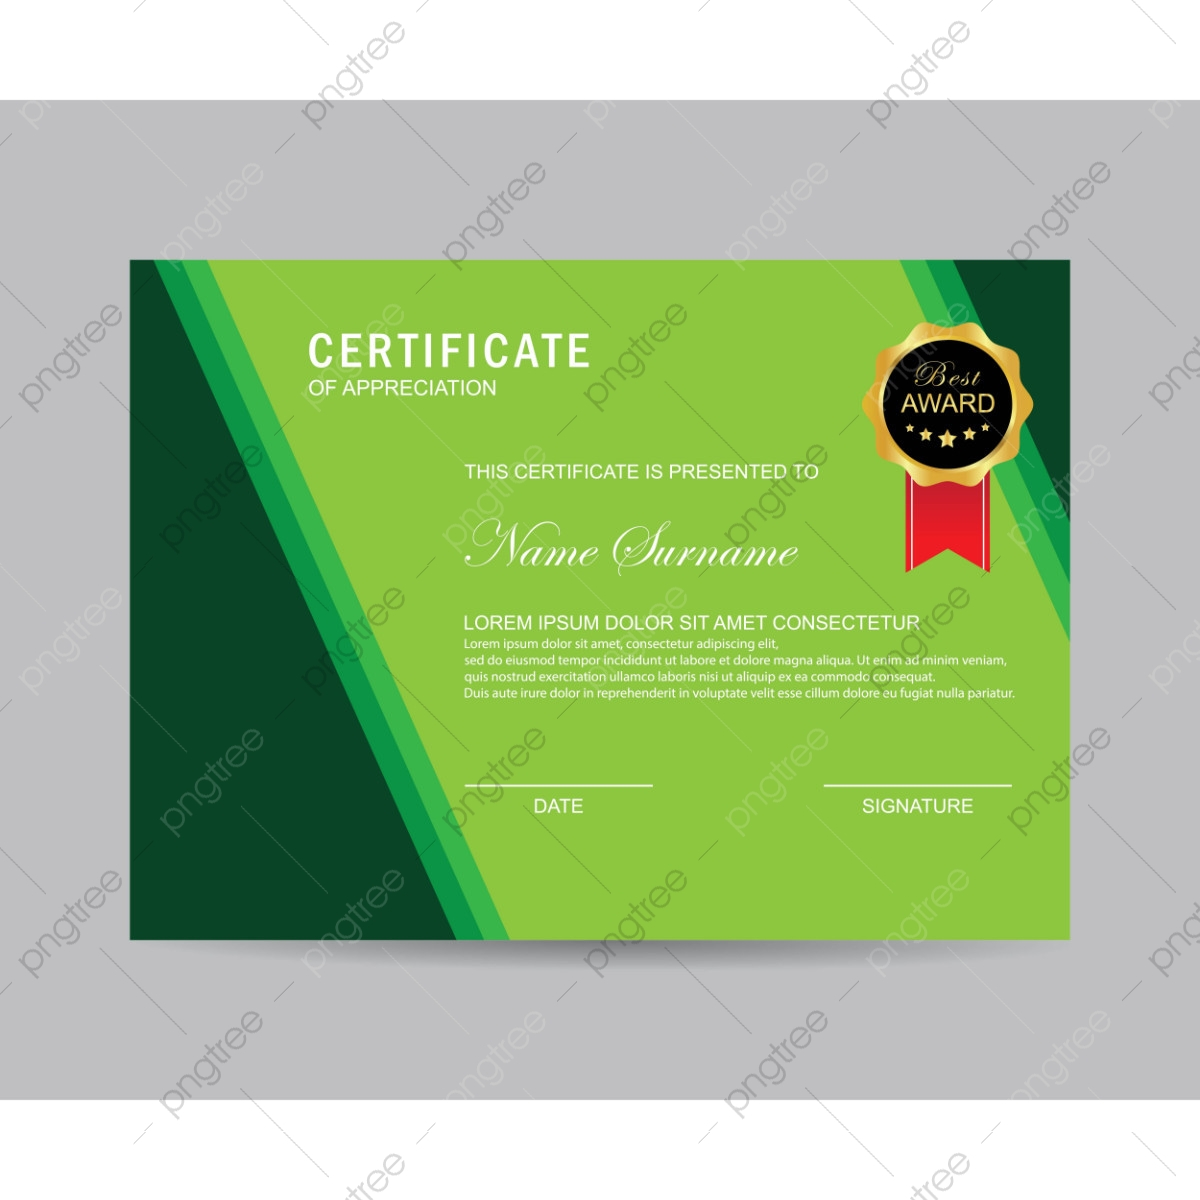 Modern Green Certificate Certificate Modern Template Png And Vector With Transparent Background For Free Download,80s Designer Imposters Body Spray